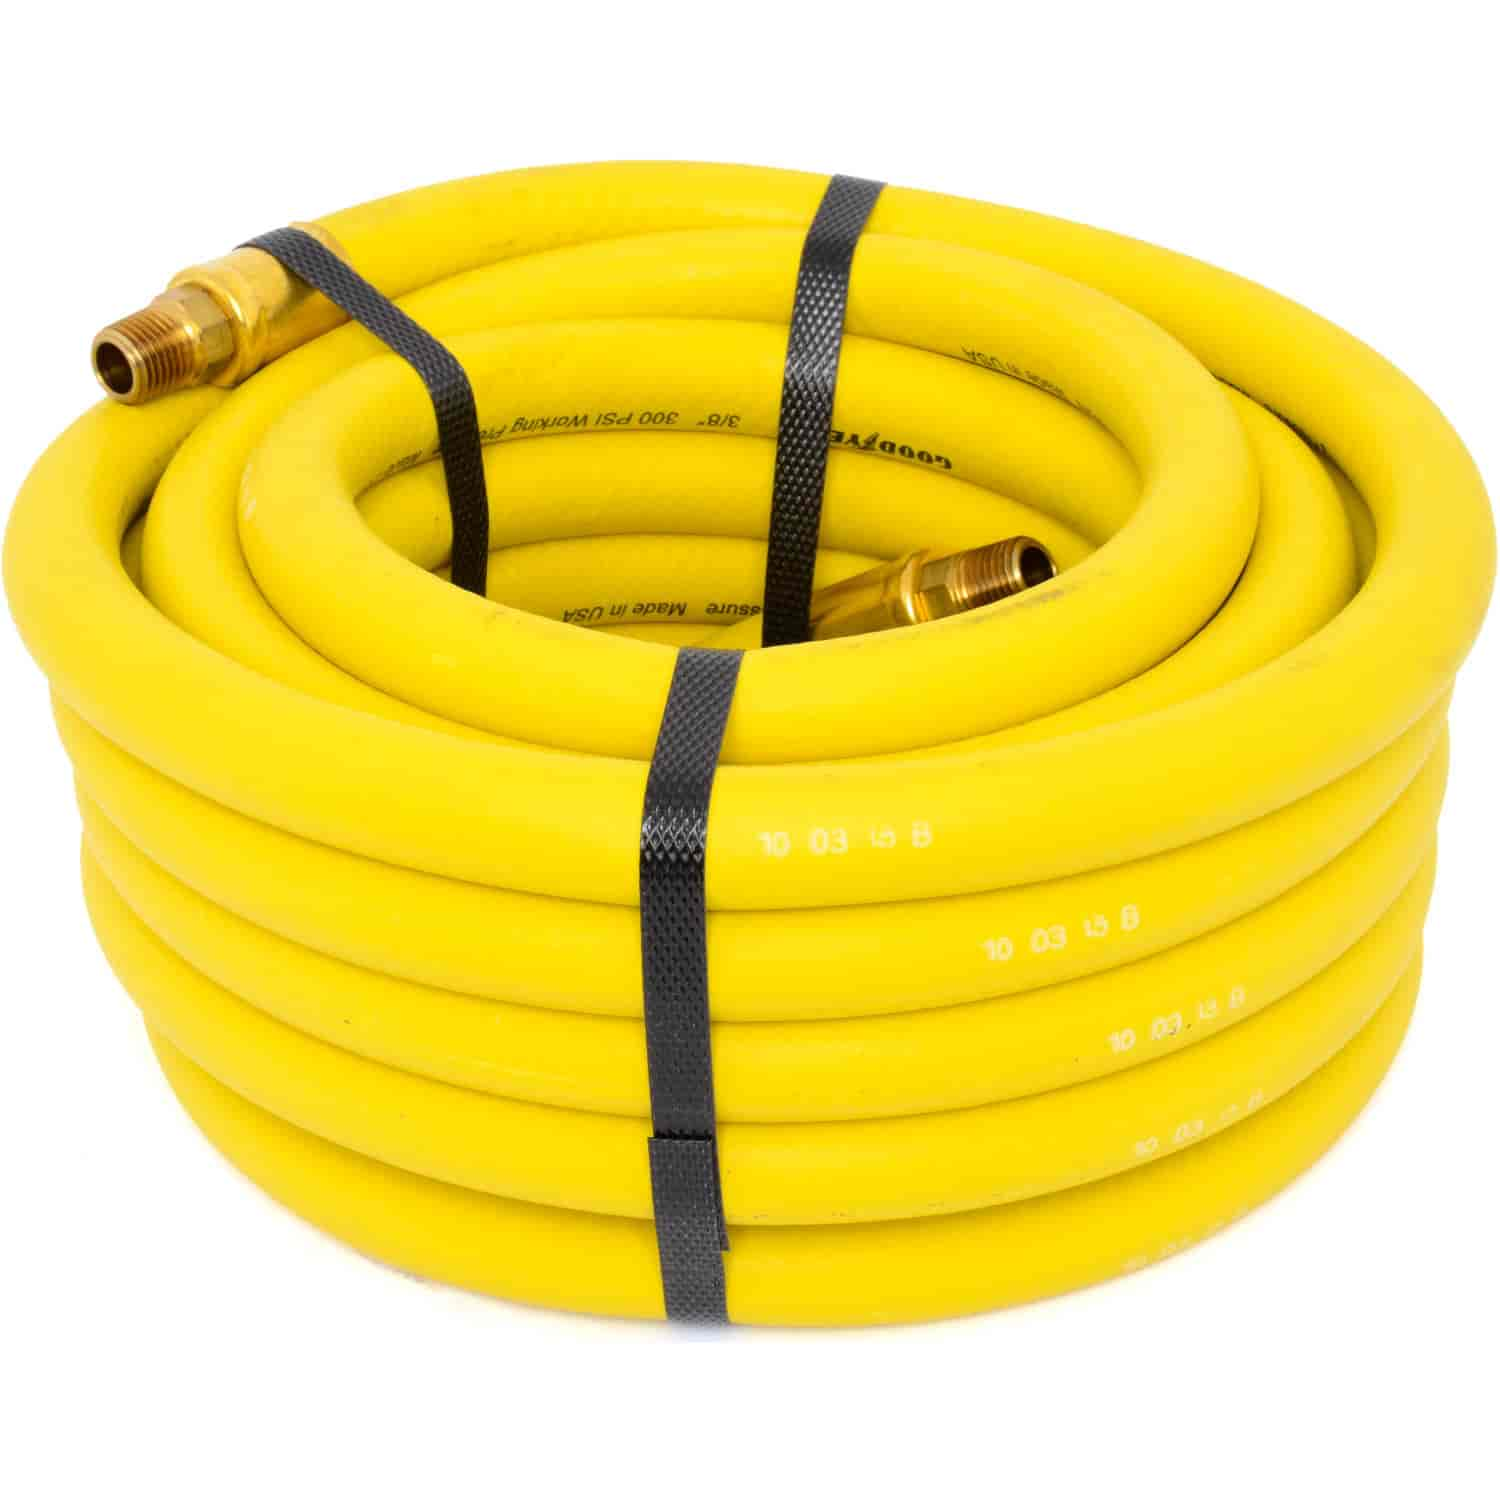 Goodyear Air Hose 12910